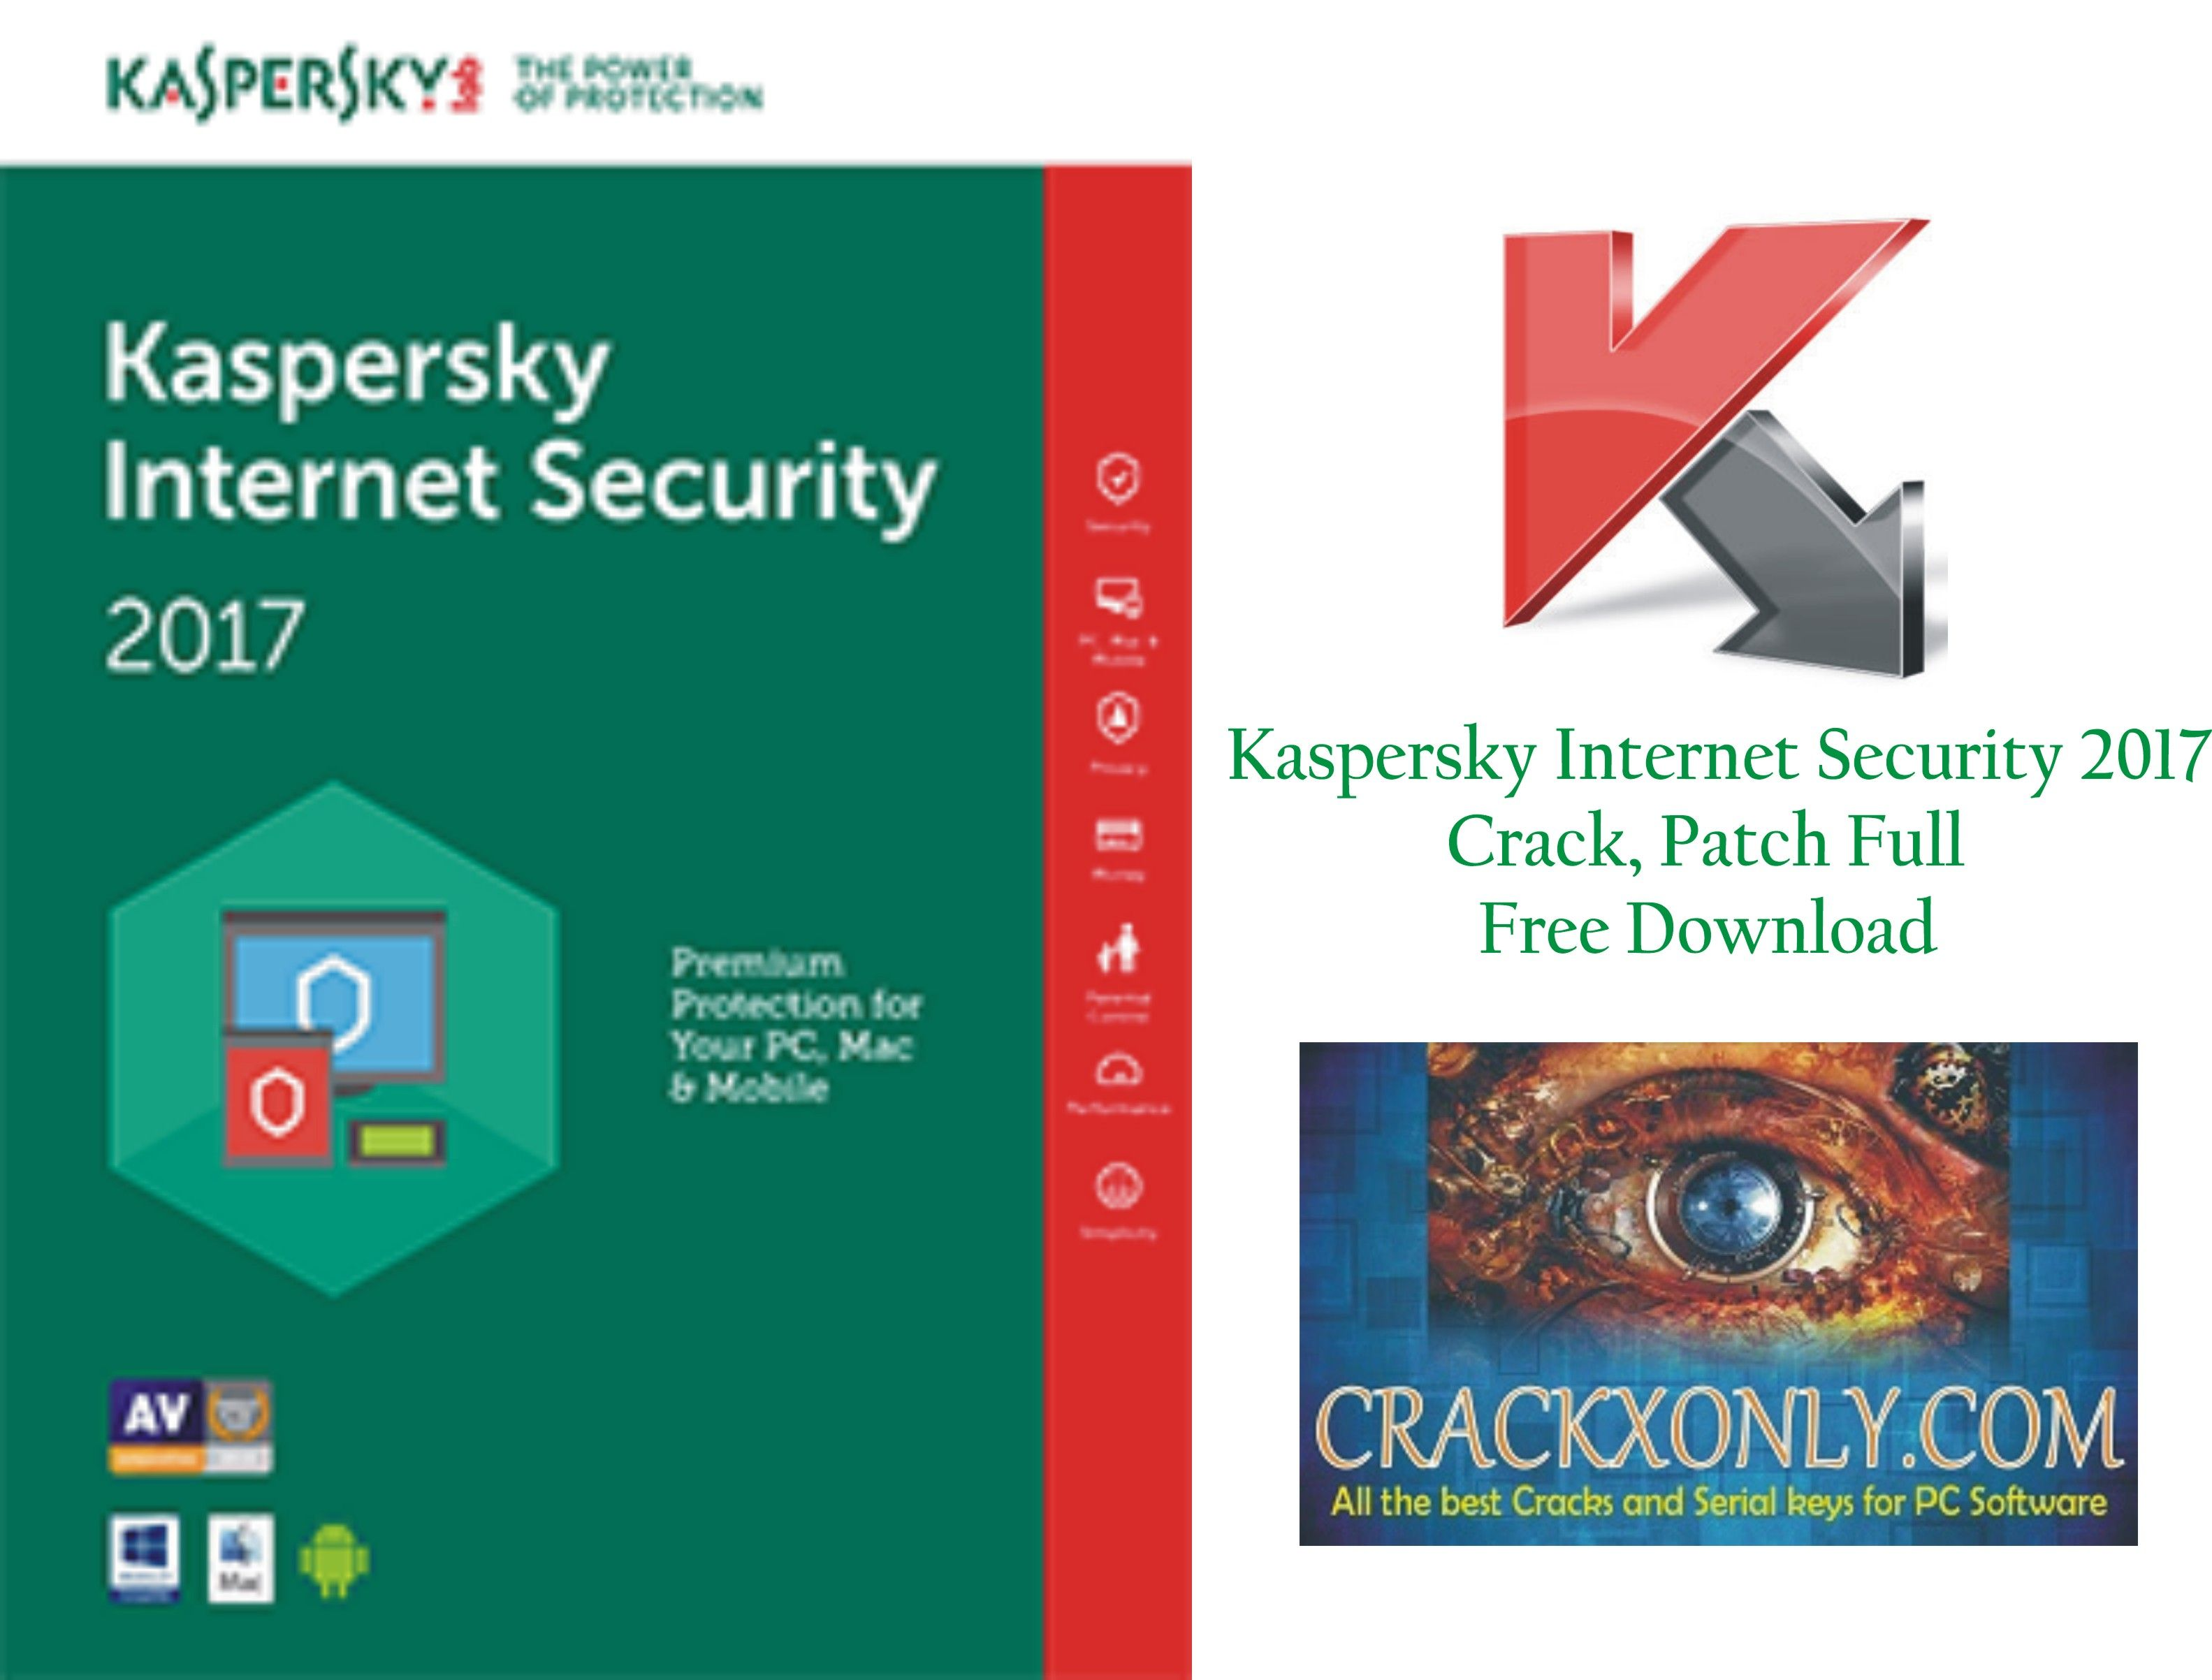 Kaspersky Internet Security 2017 Crack, Patch Full Free Download